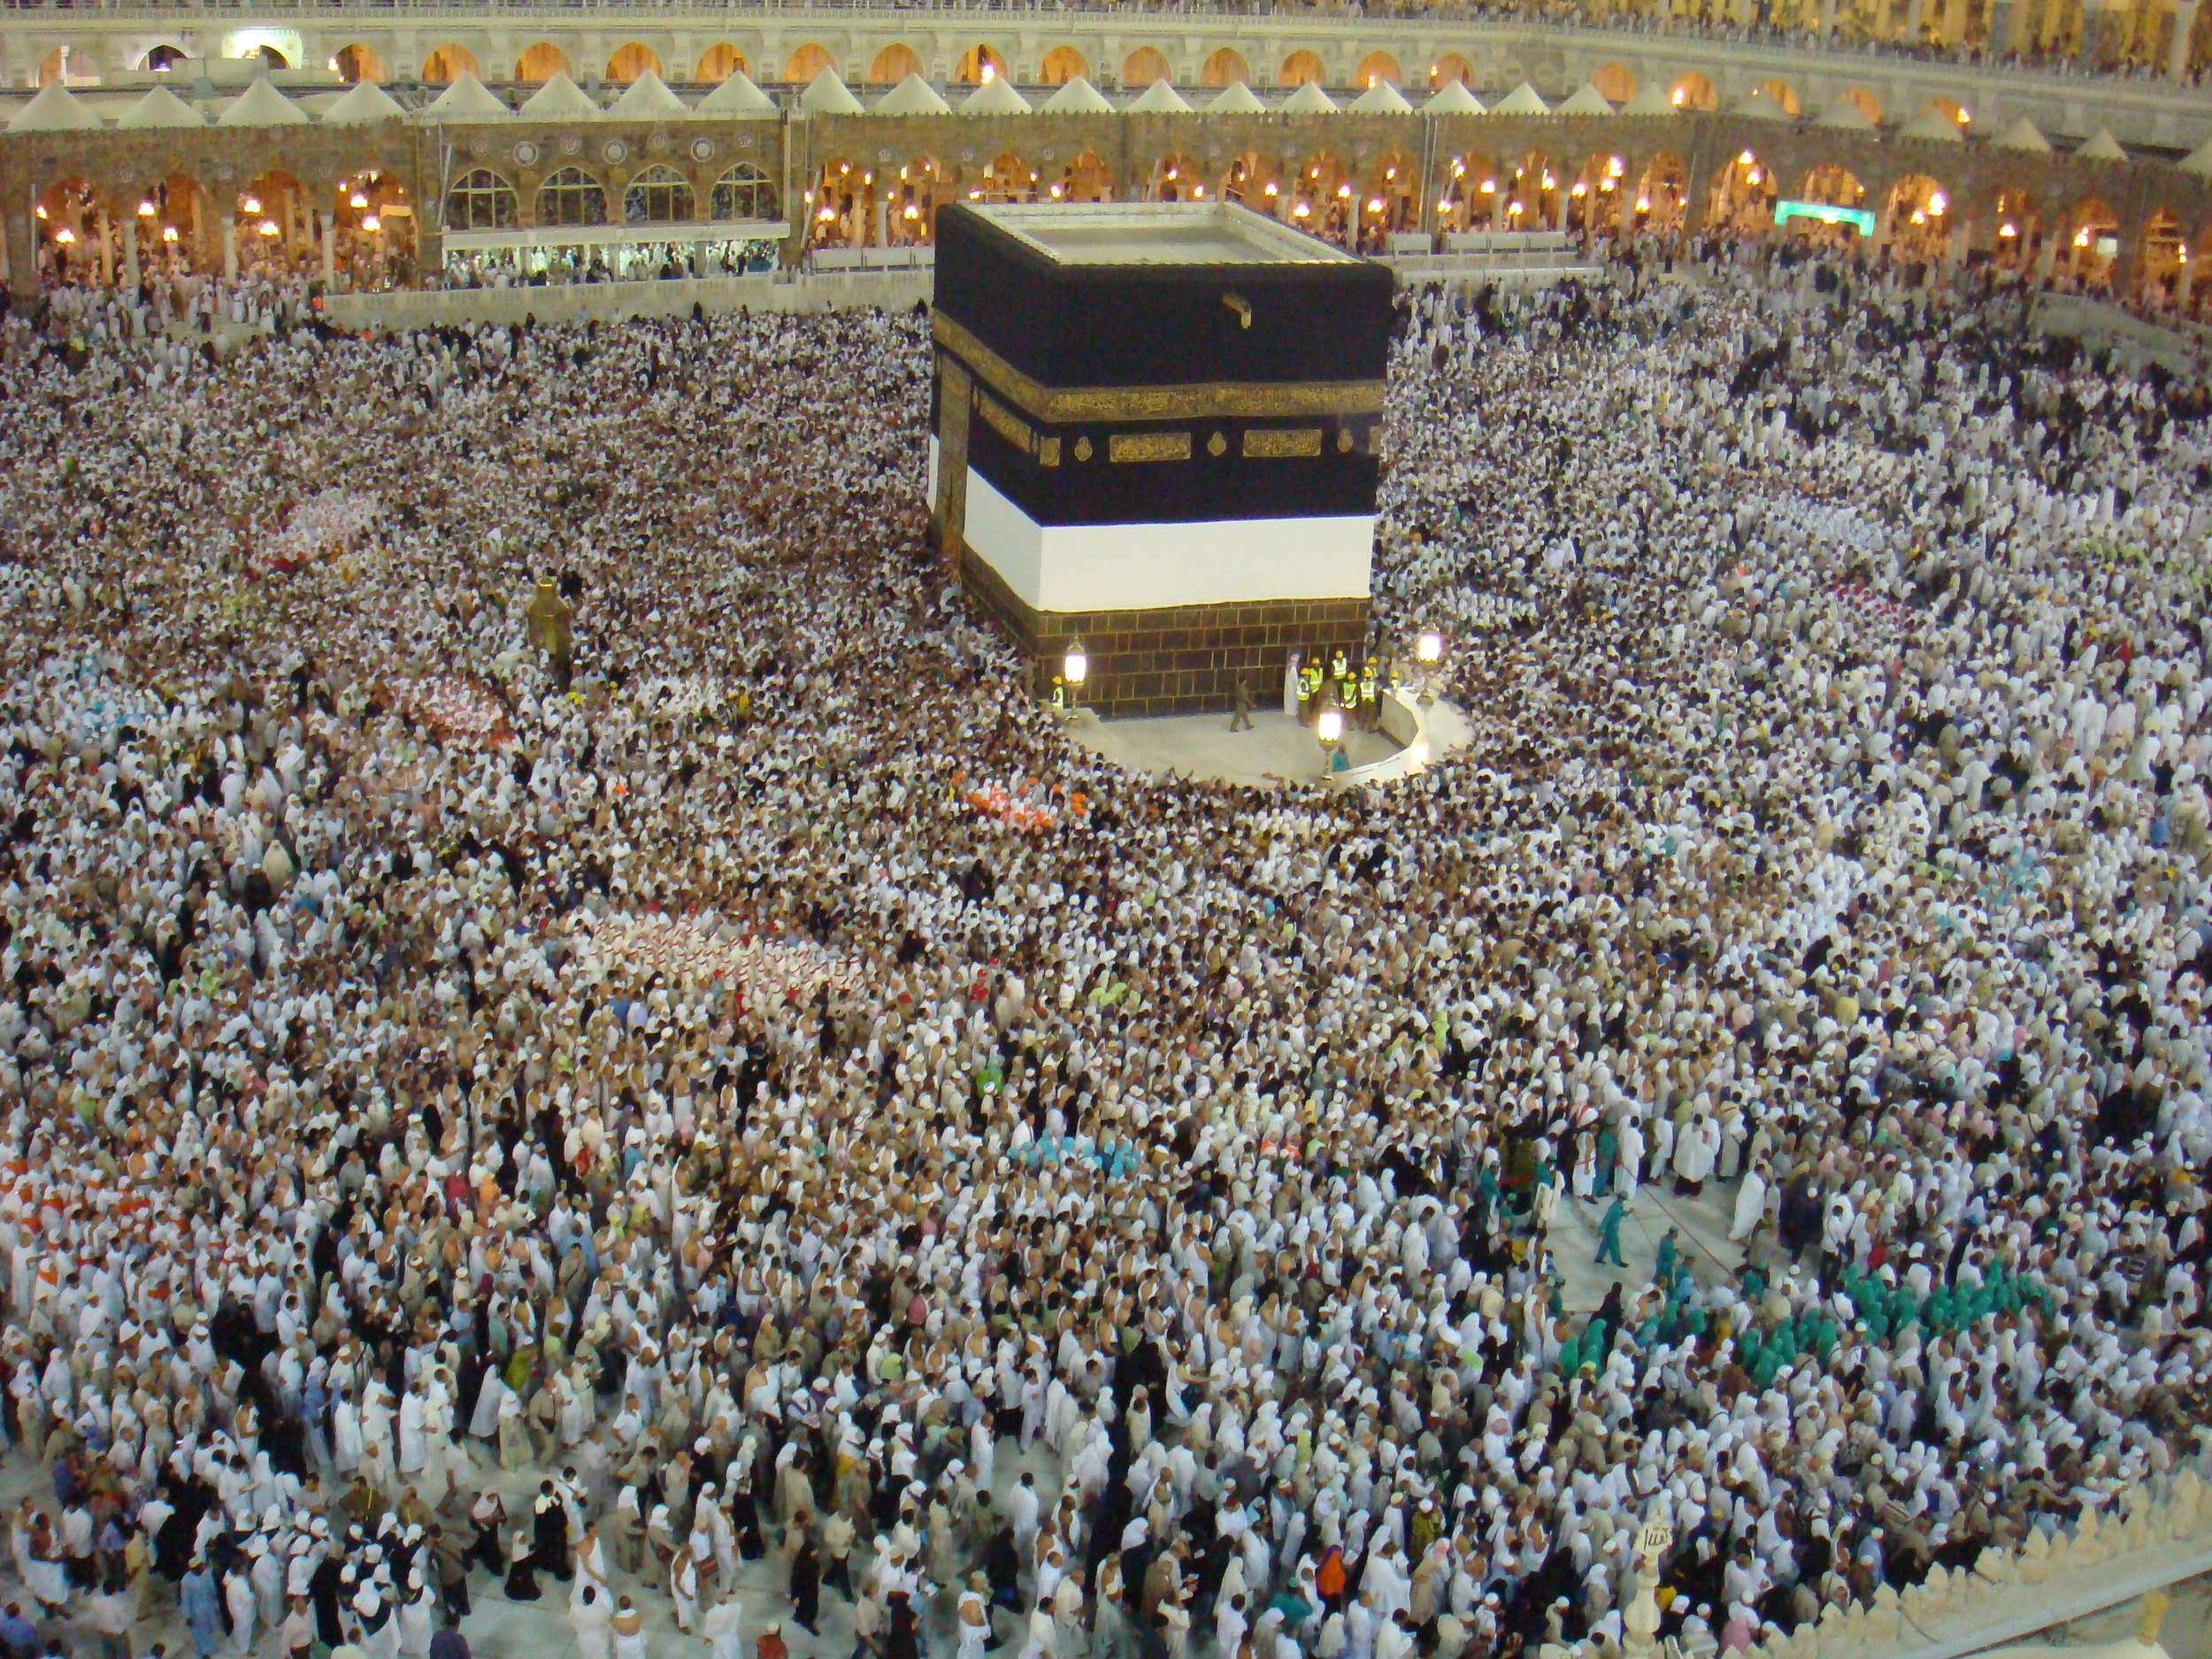 The Hajj. Photo: Al Jazeera English (Flickr)